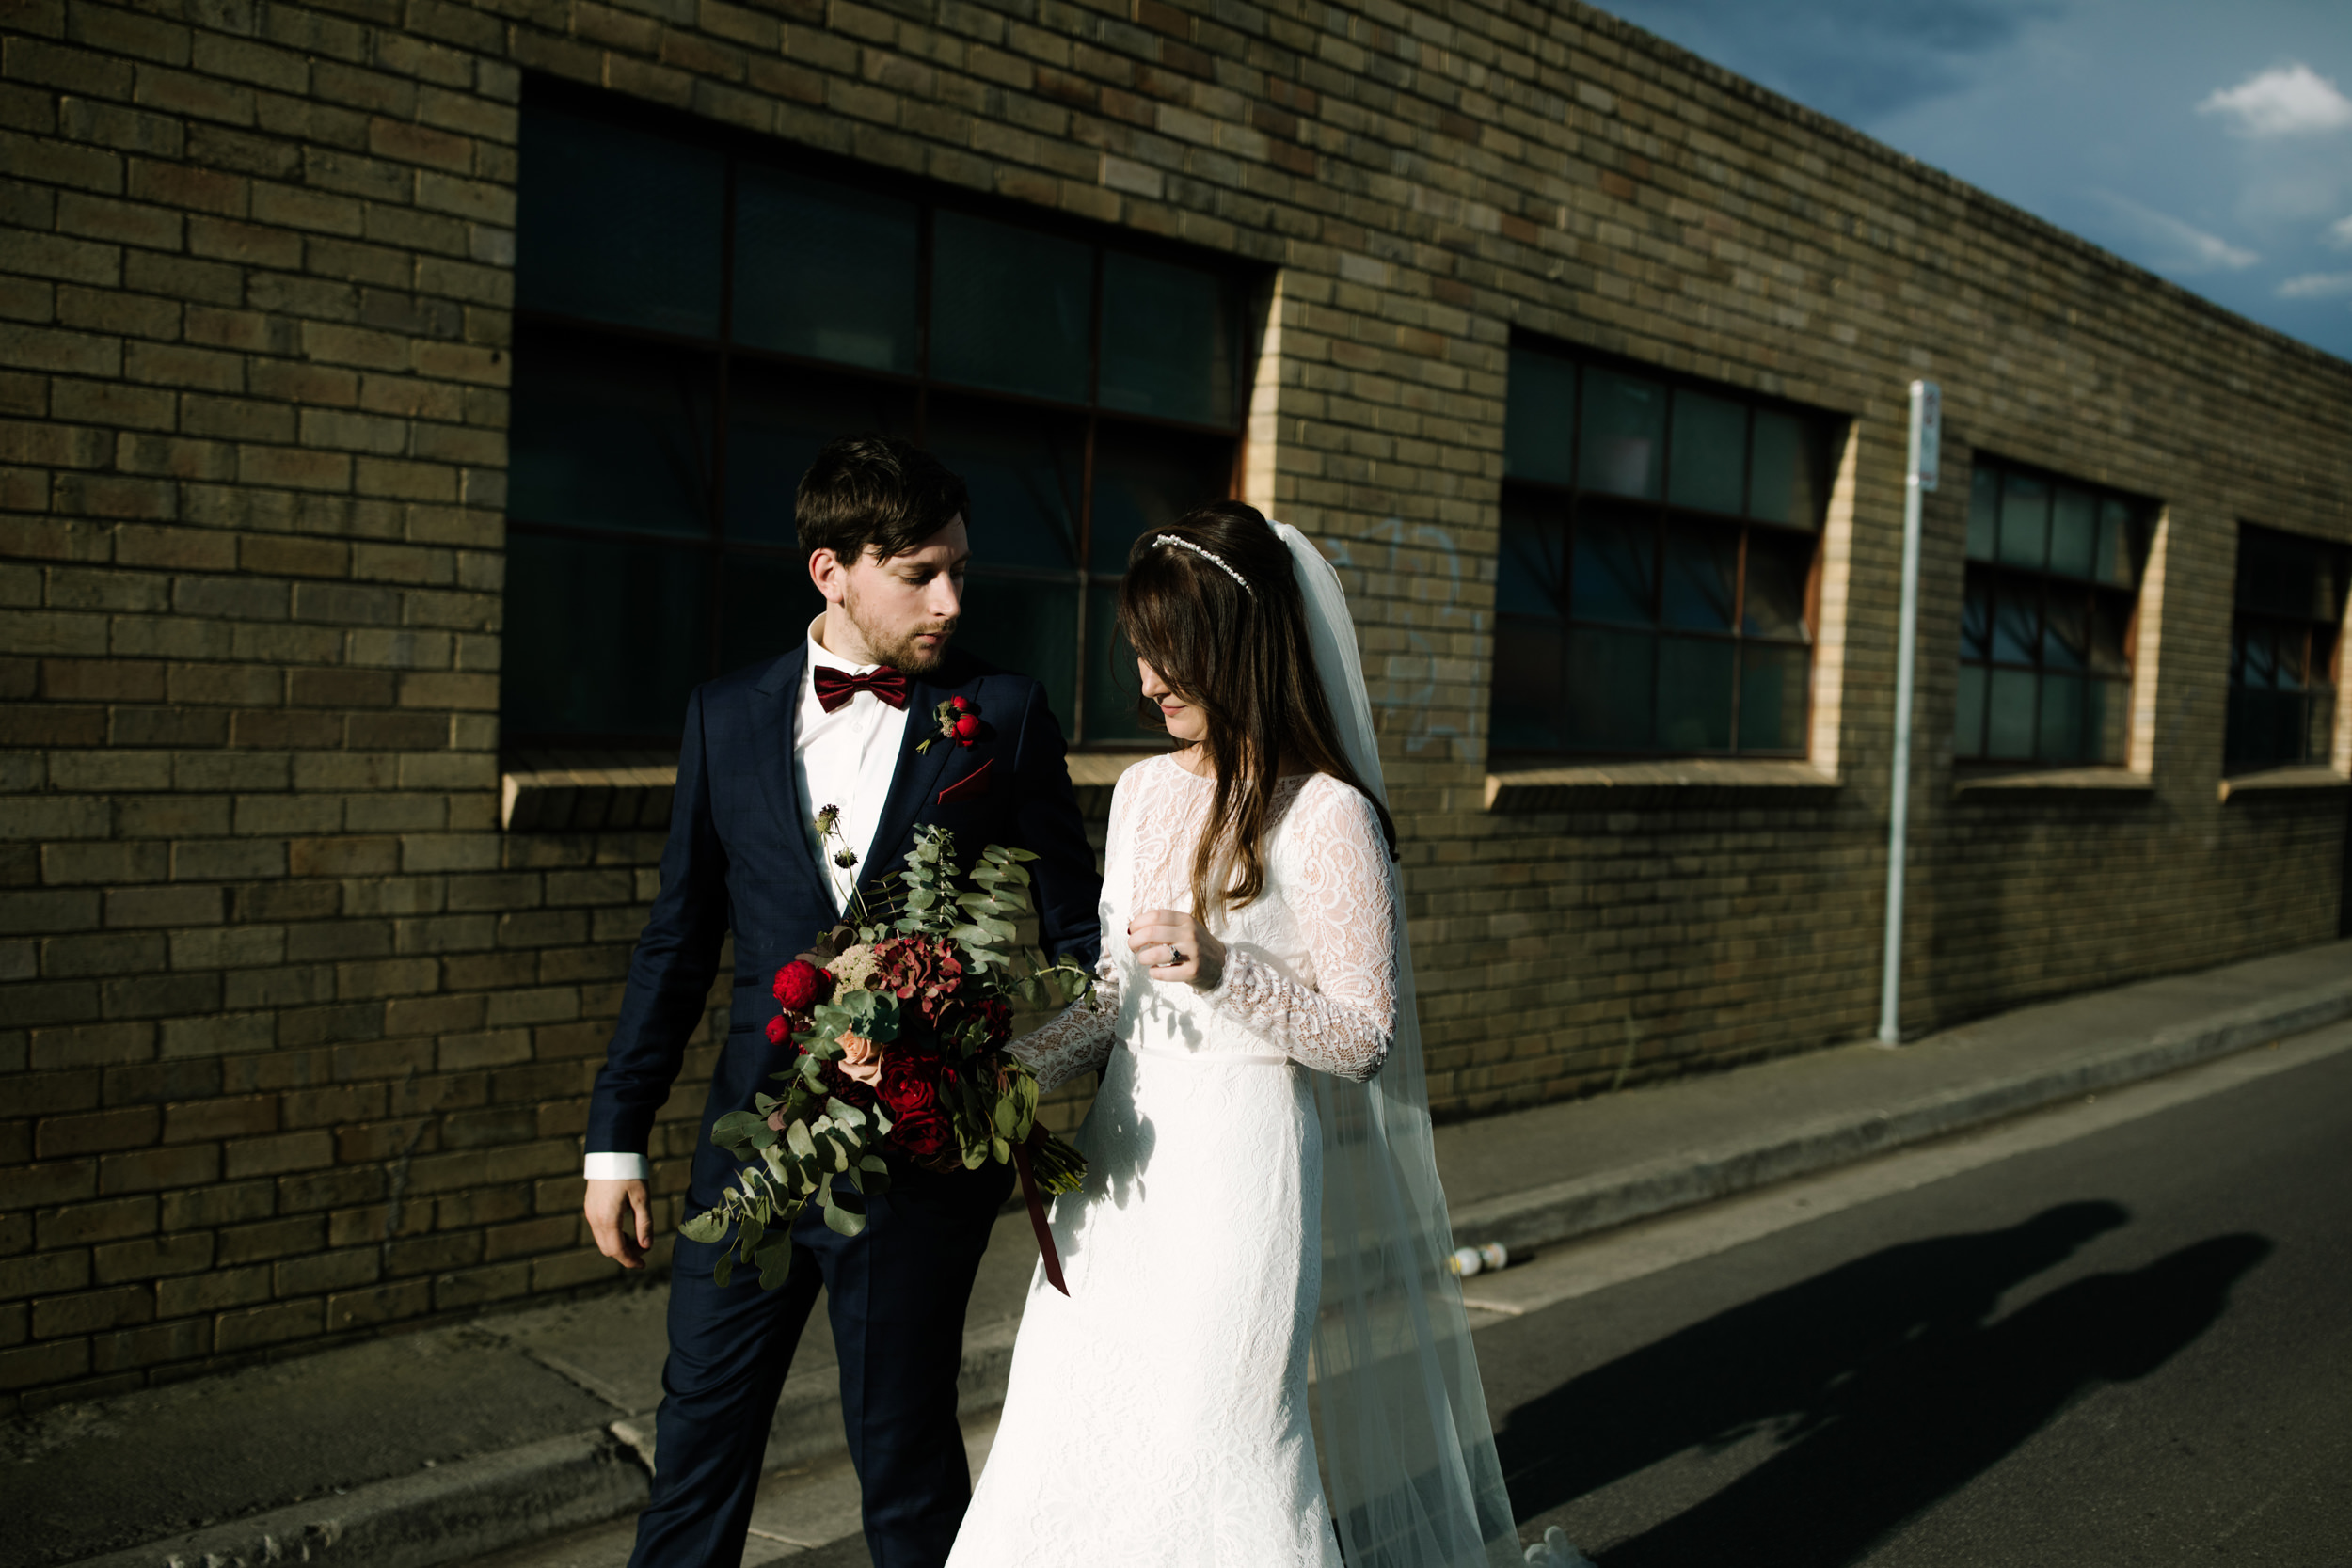 I_Got_You_Babe_Weddings_Emily_Matt_Rupert_Glasshaus_Melbourne0129.JPG